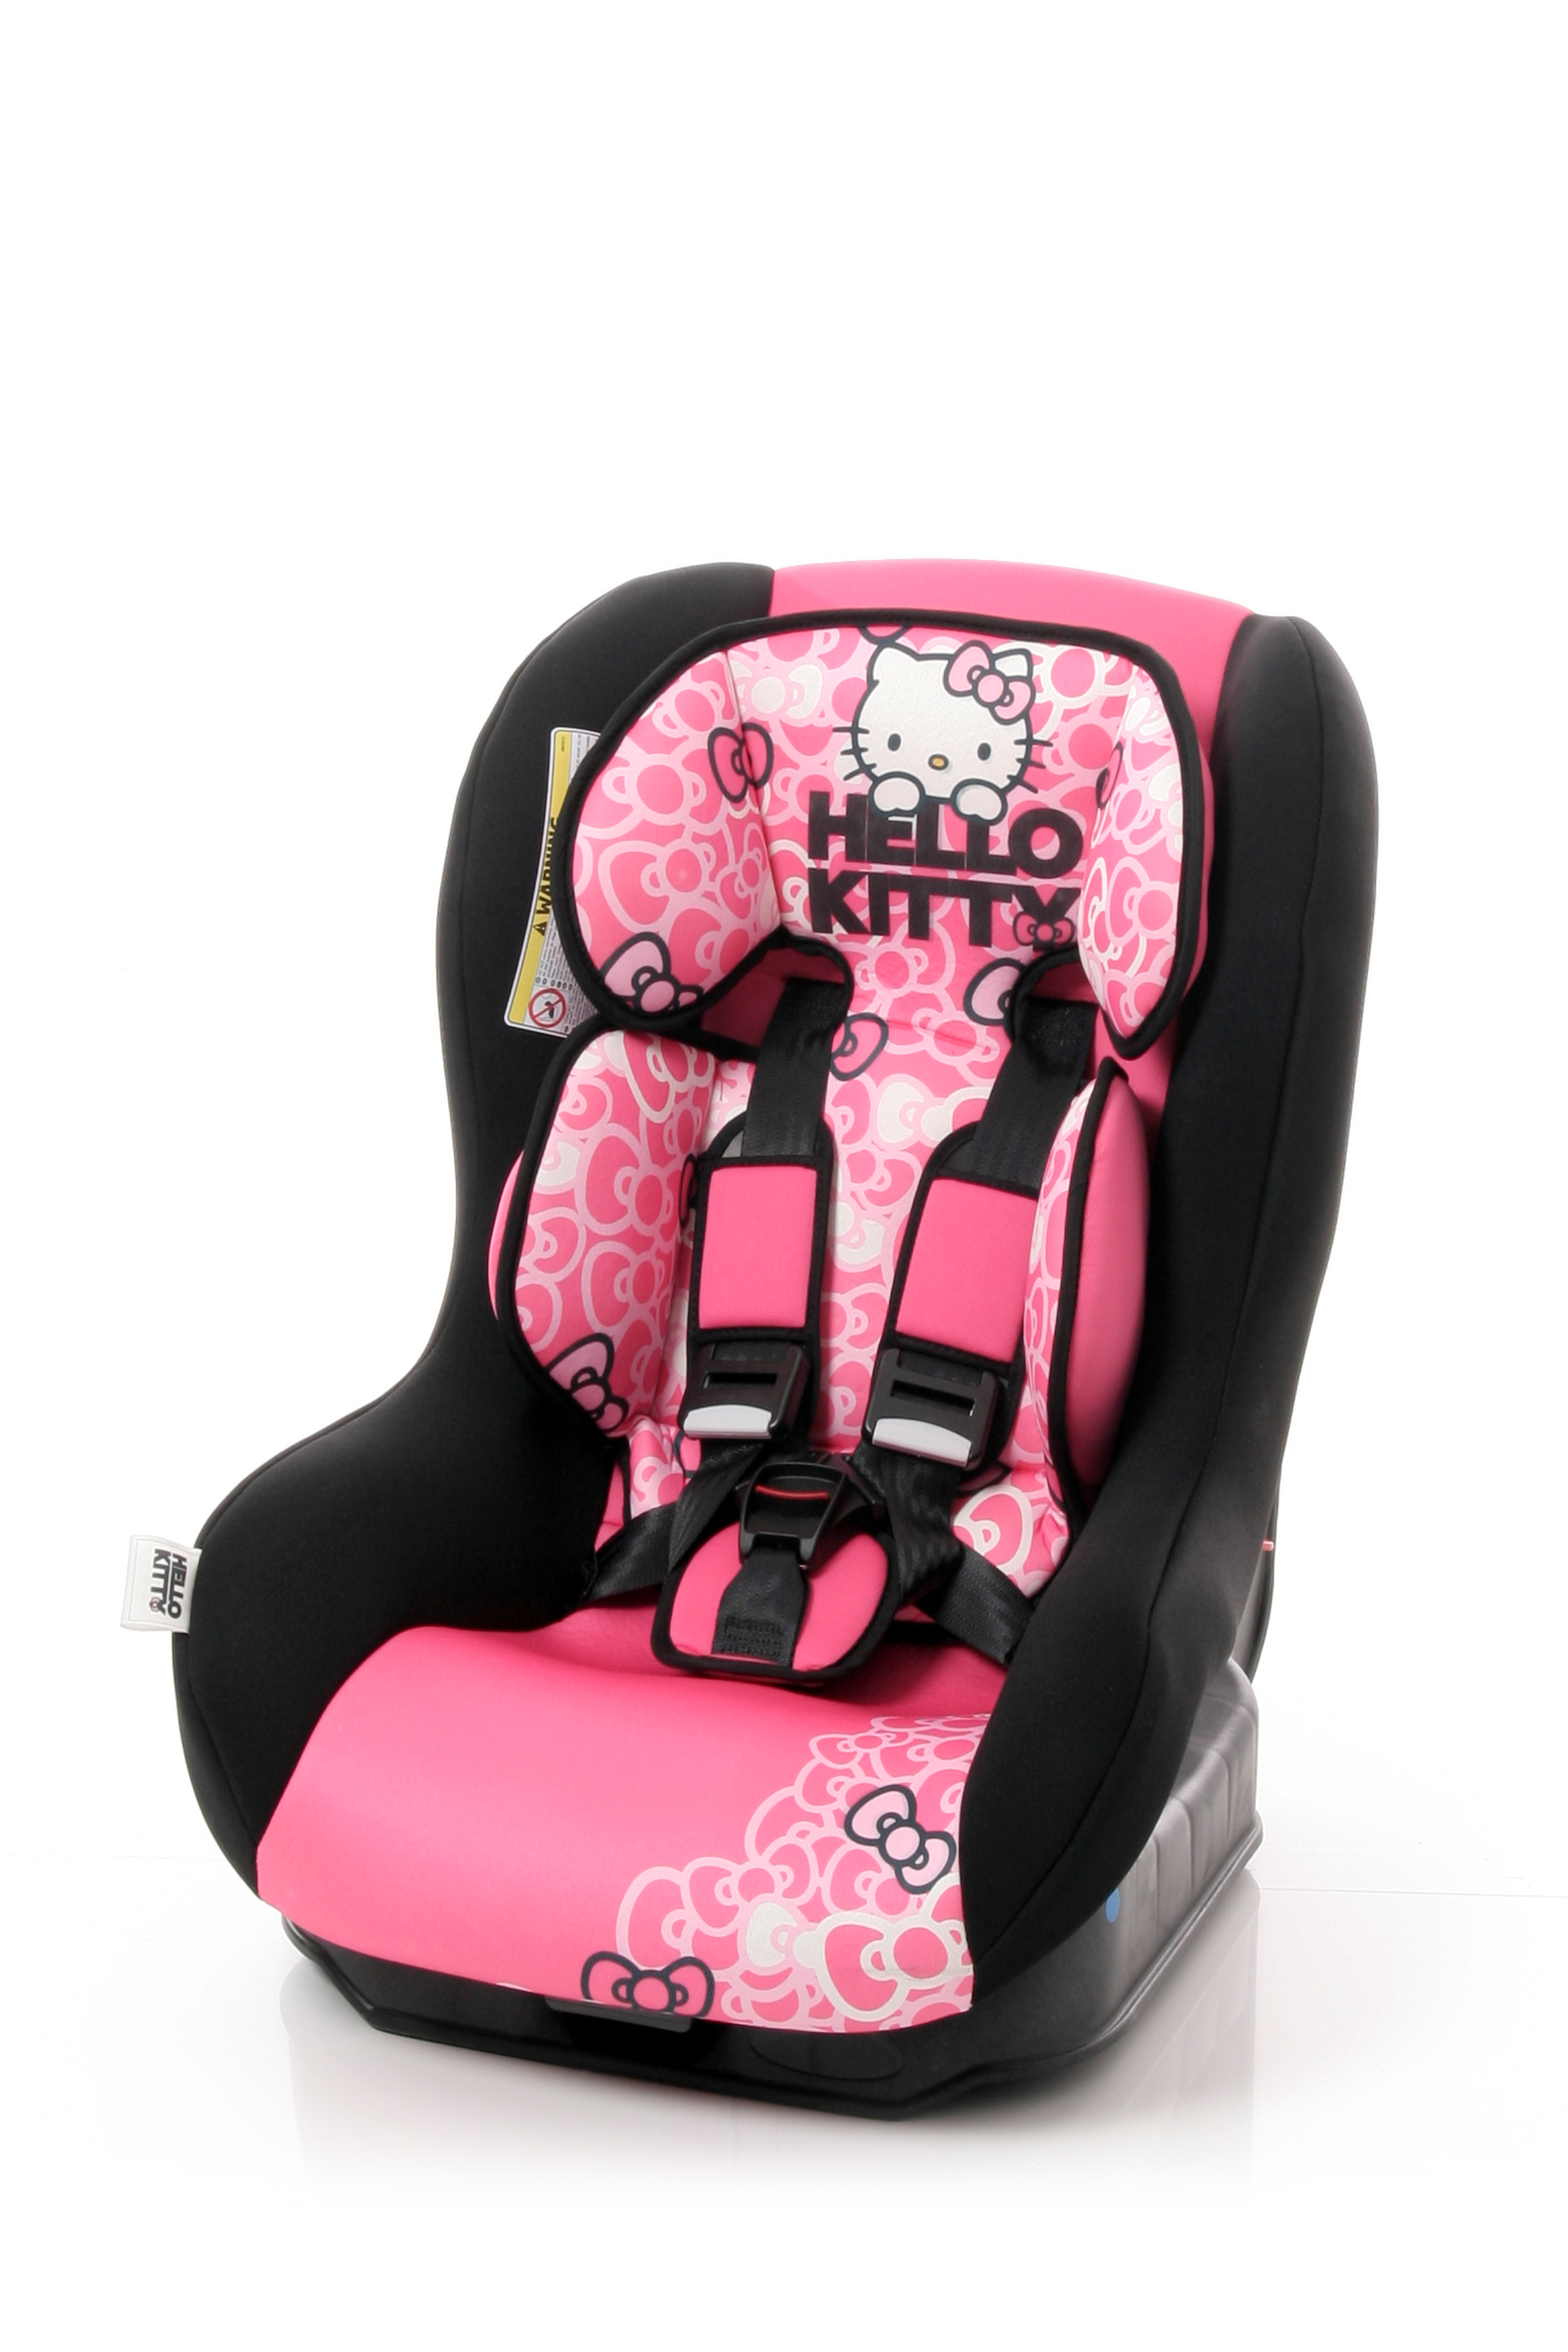 osann safety plus nt hello kitty kinder auto sitz autositz. Black Bedroom Furniture Sets. Home Design Ideas